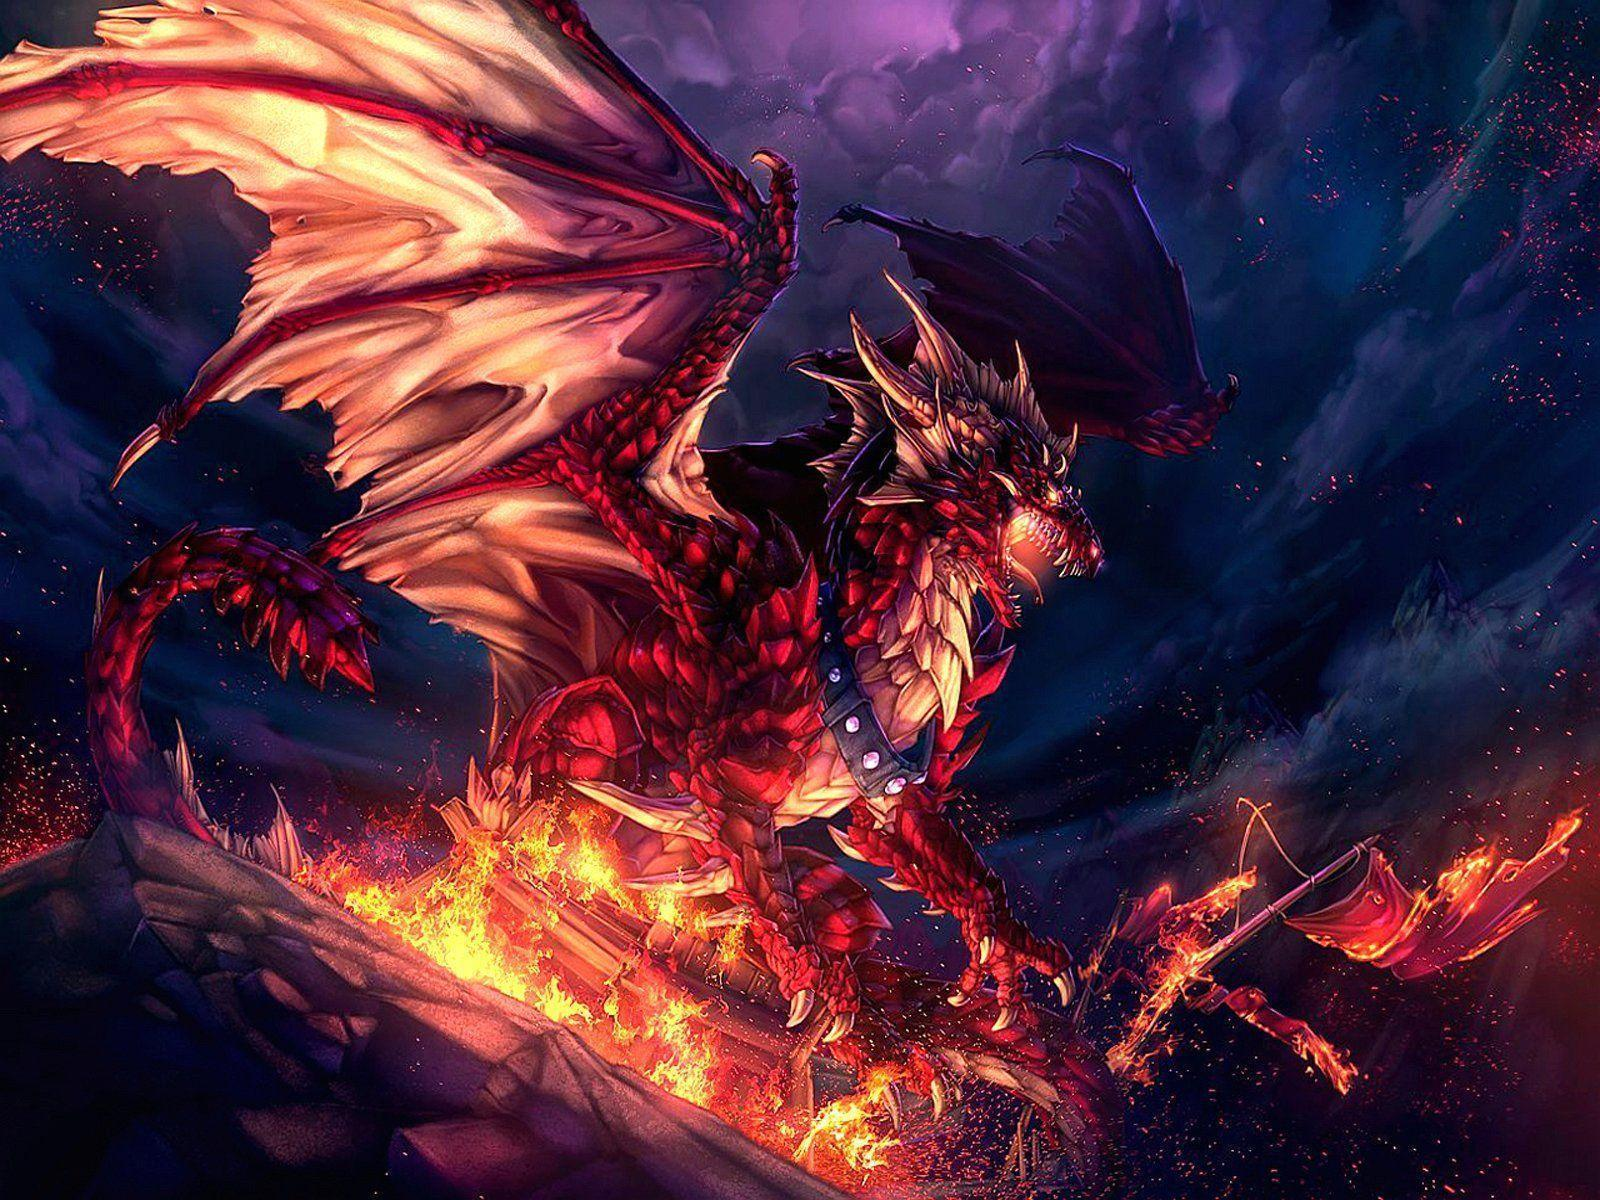 Red Dragon Wallpapers - Wallpaper Cave